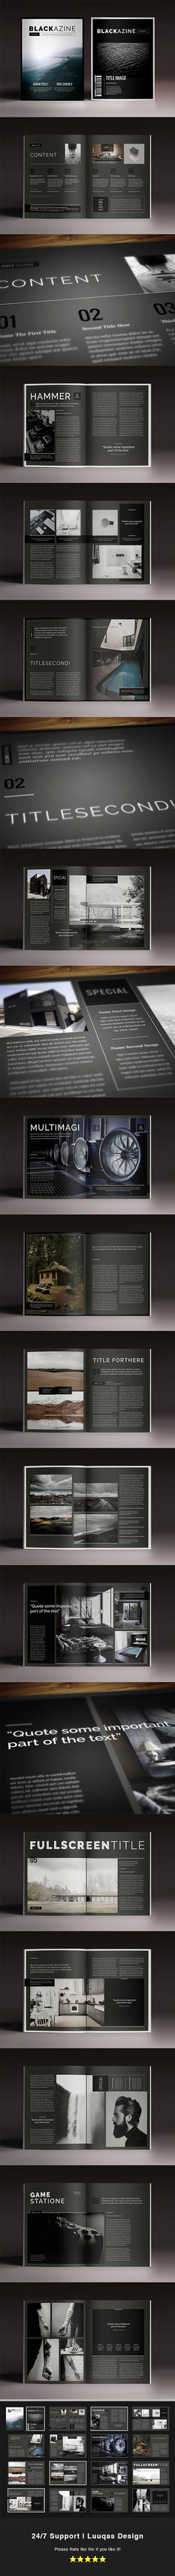 Blackazine Indesign Template by luuqas